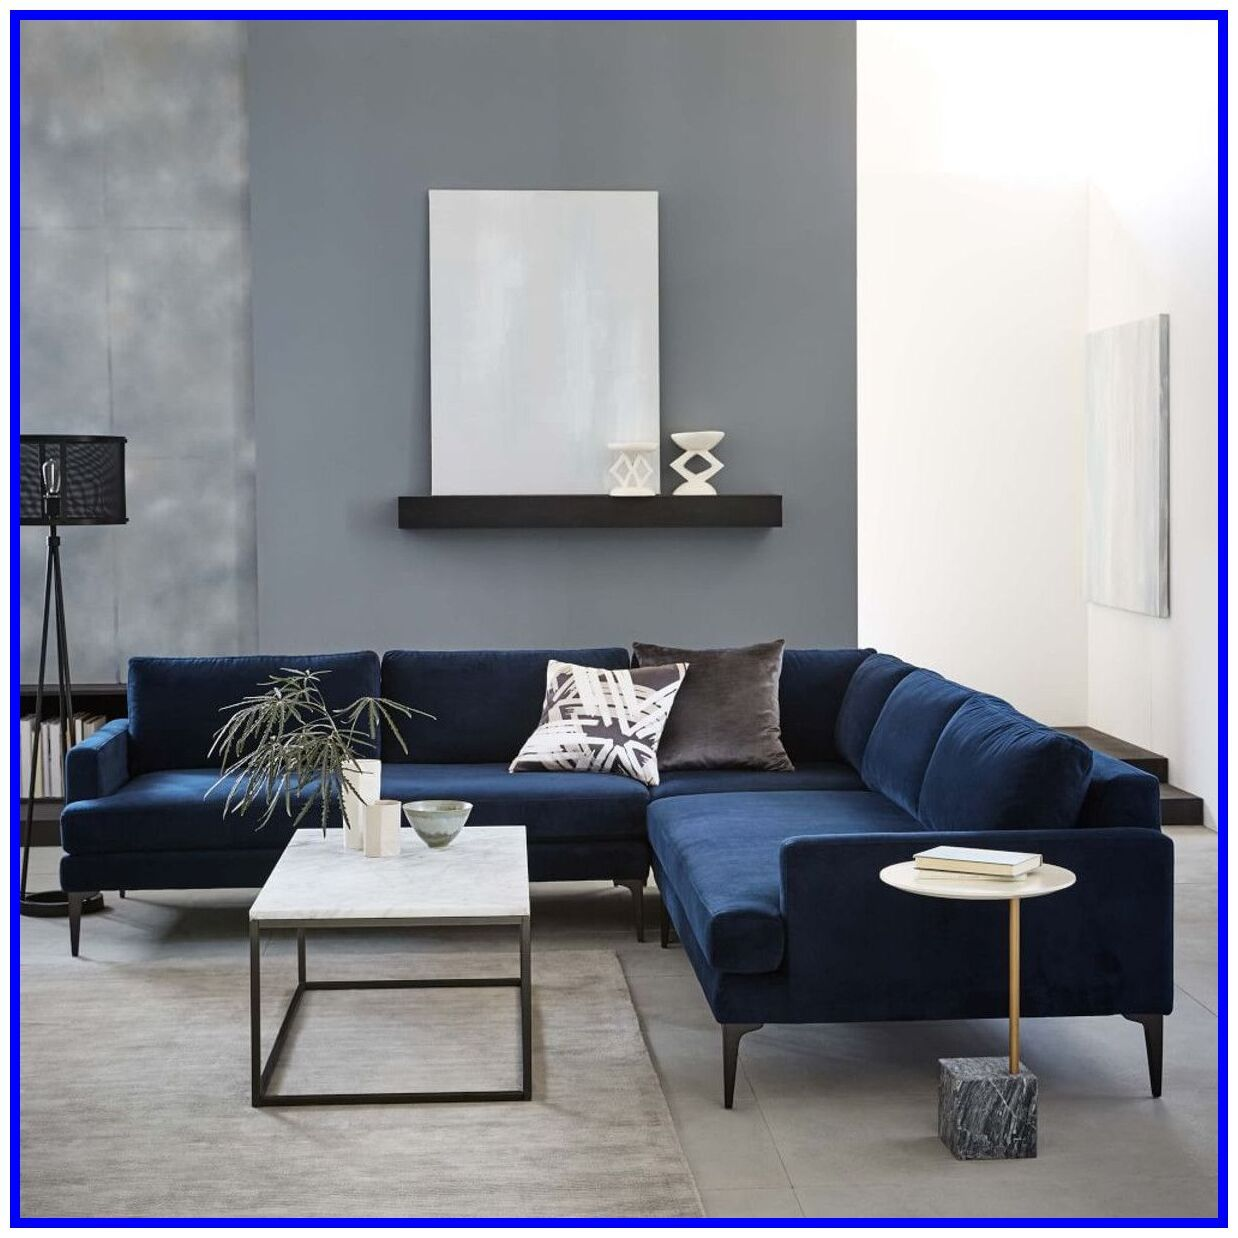 32 Reference Of Blue L Shaped Sofa Bed In 2020 Blue Sofas Living Room Blue Living Room Sofa Design